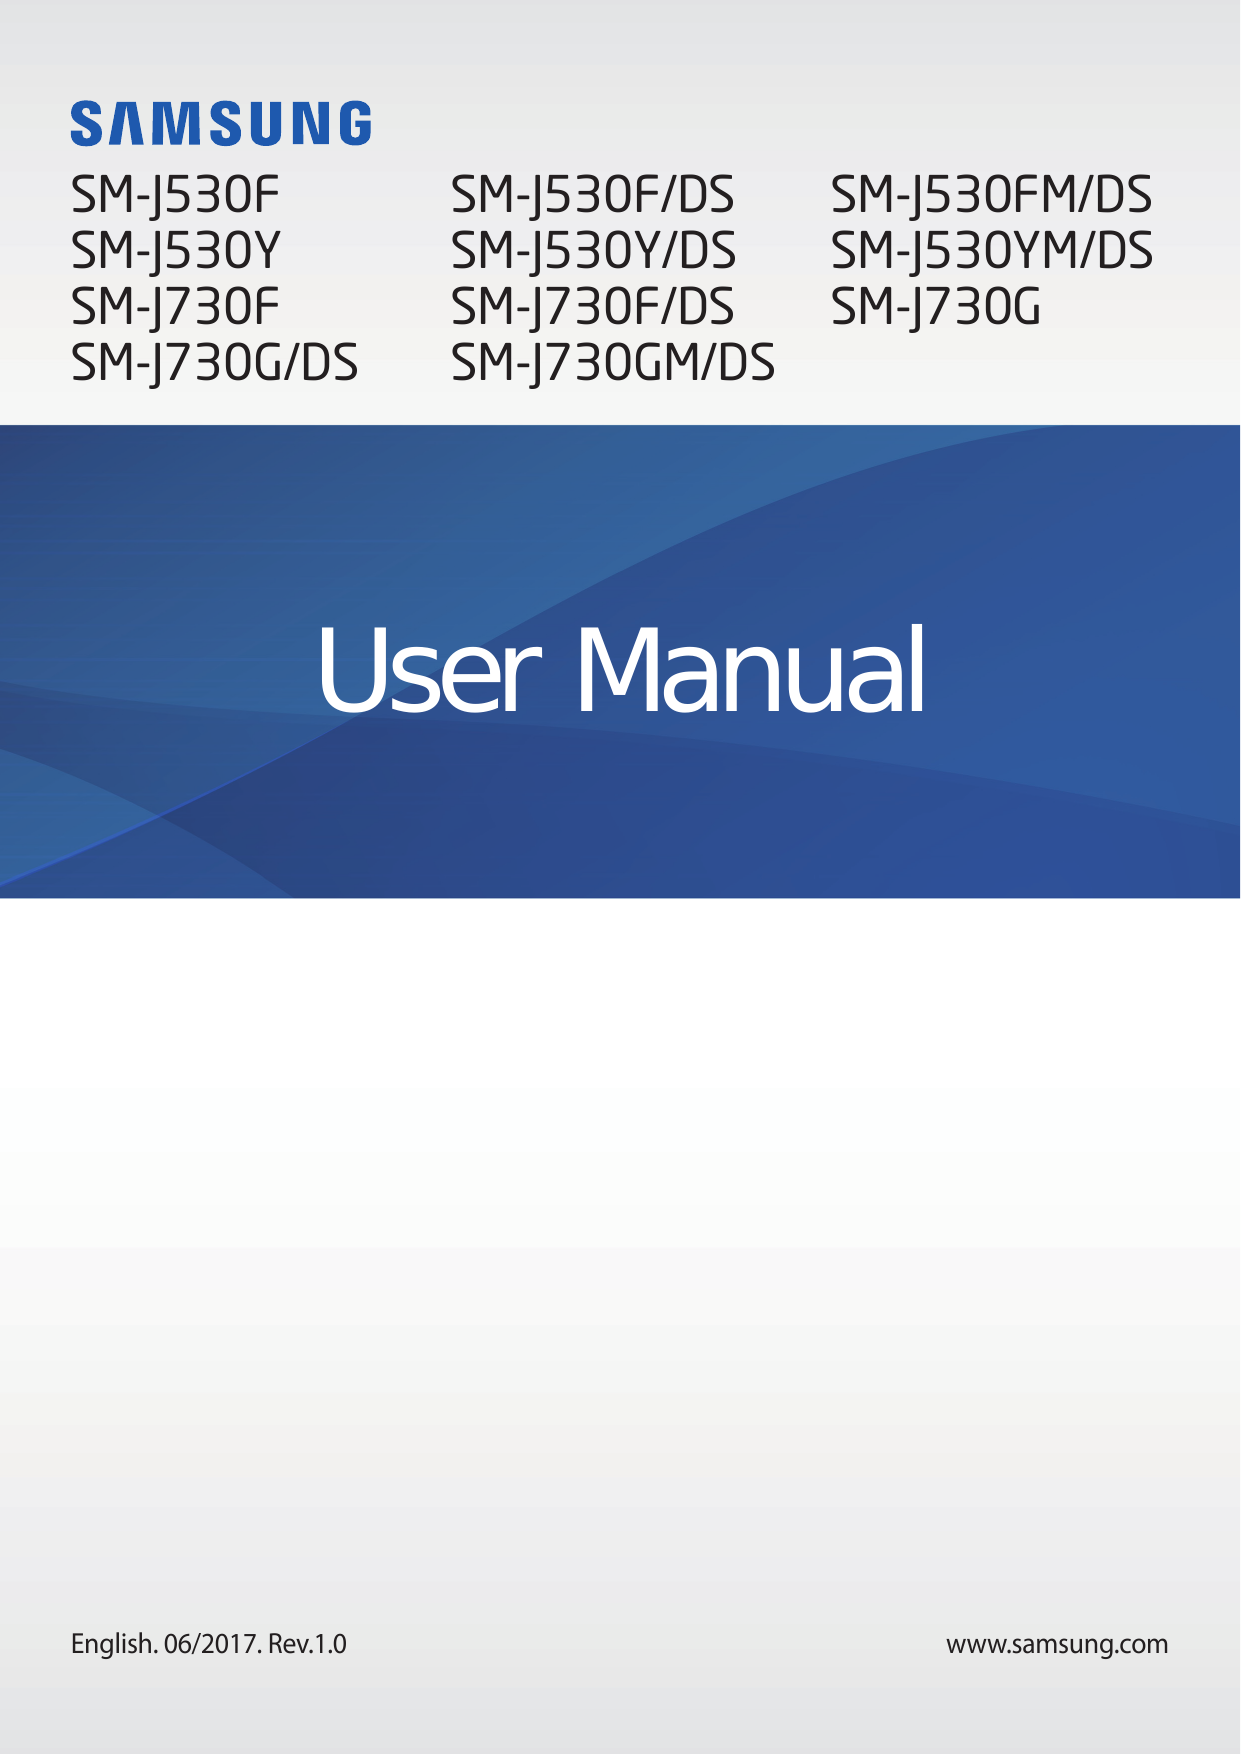 Manual - Samsung Galaxy J7 Pro (2017) - Android 7 0 - Device